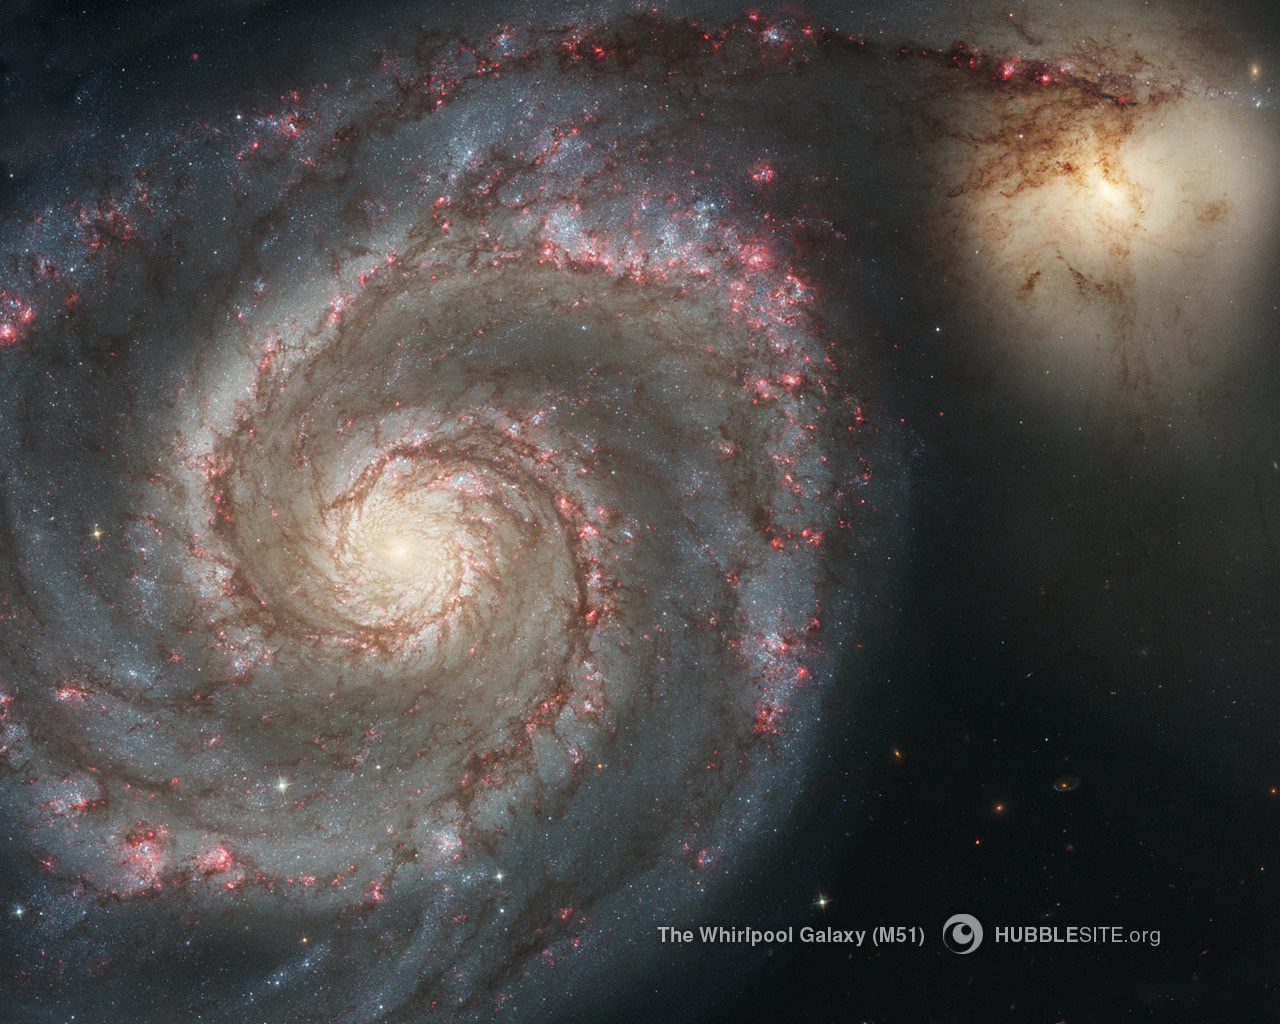 whirlpool galaxy hubble nasa center picture - photo #12